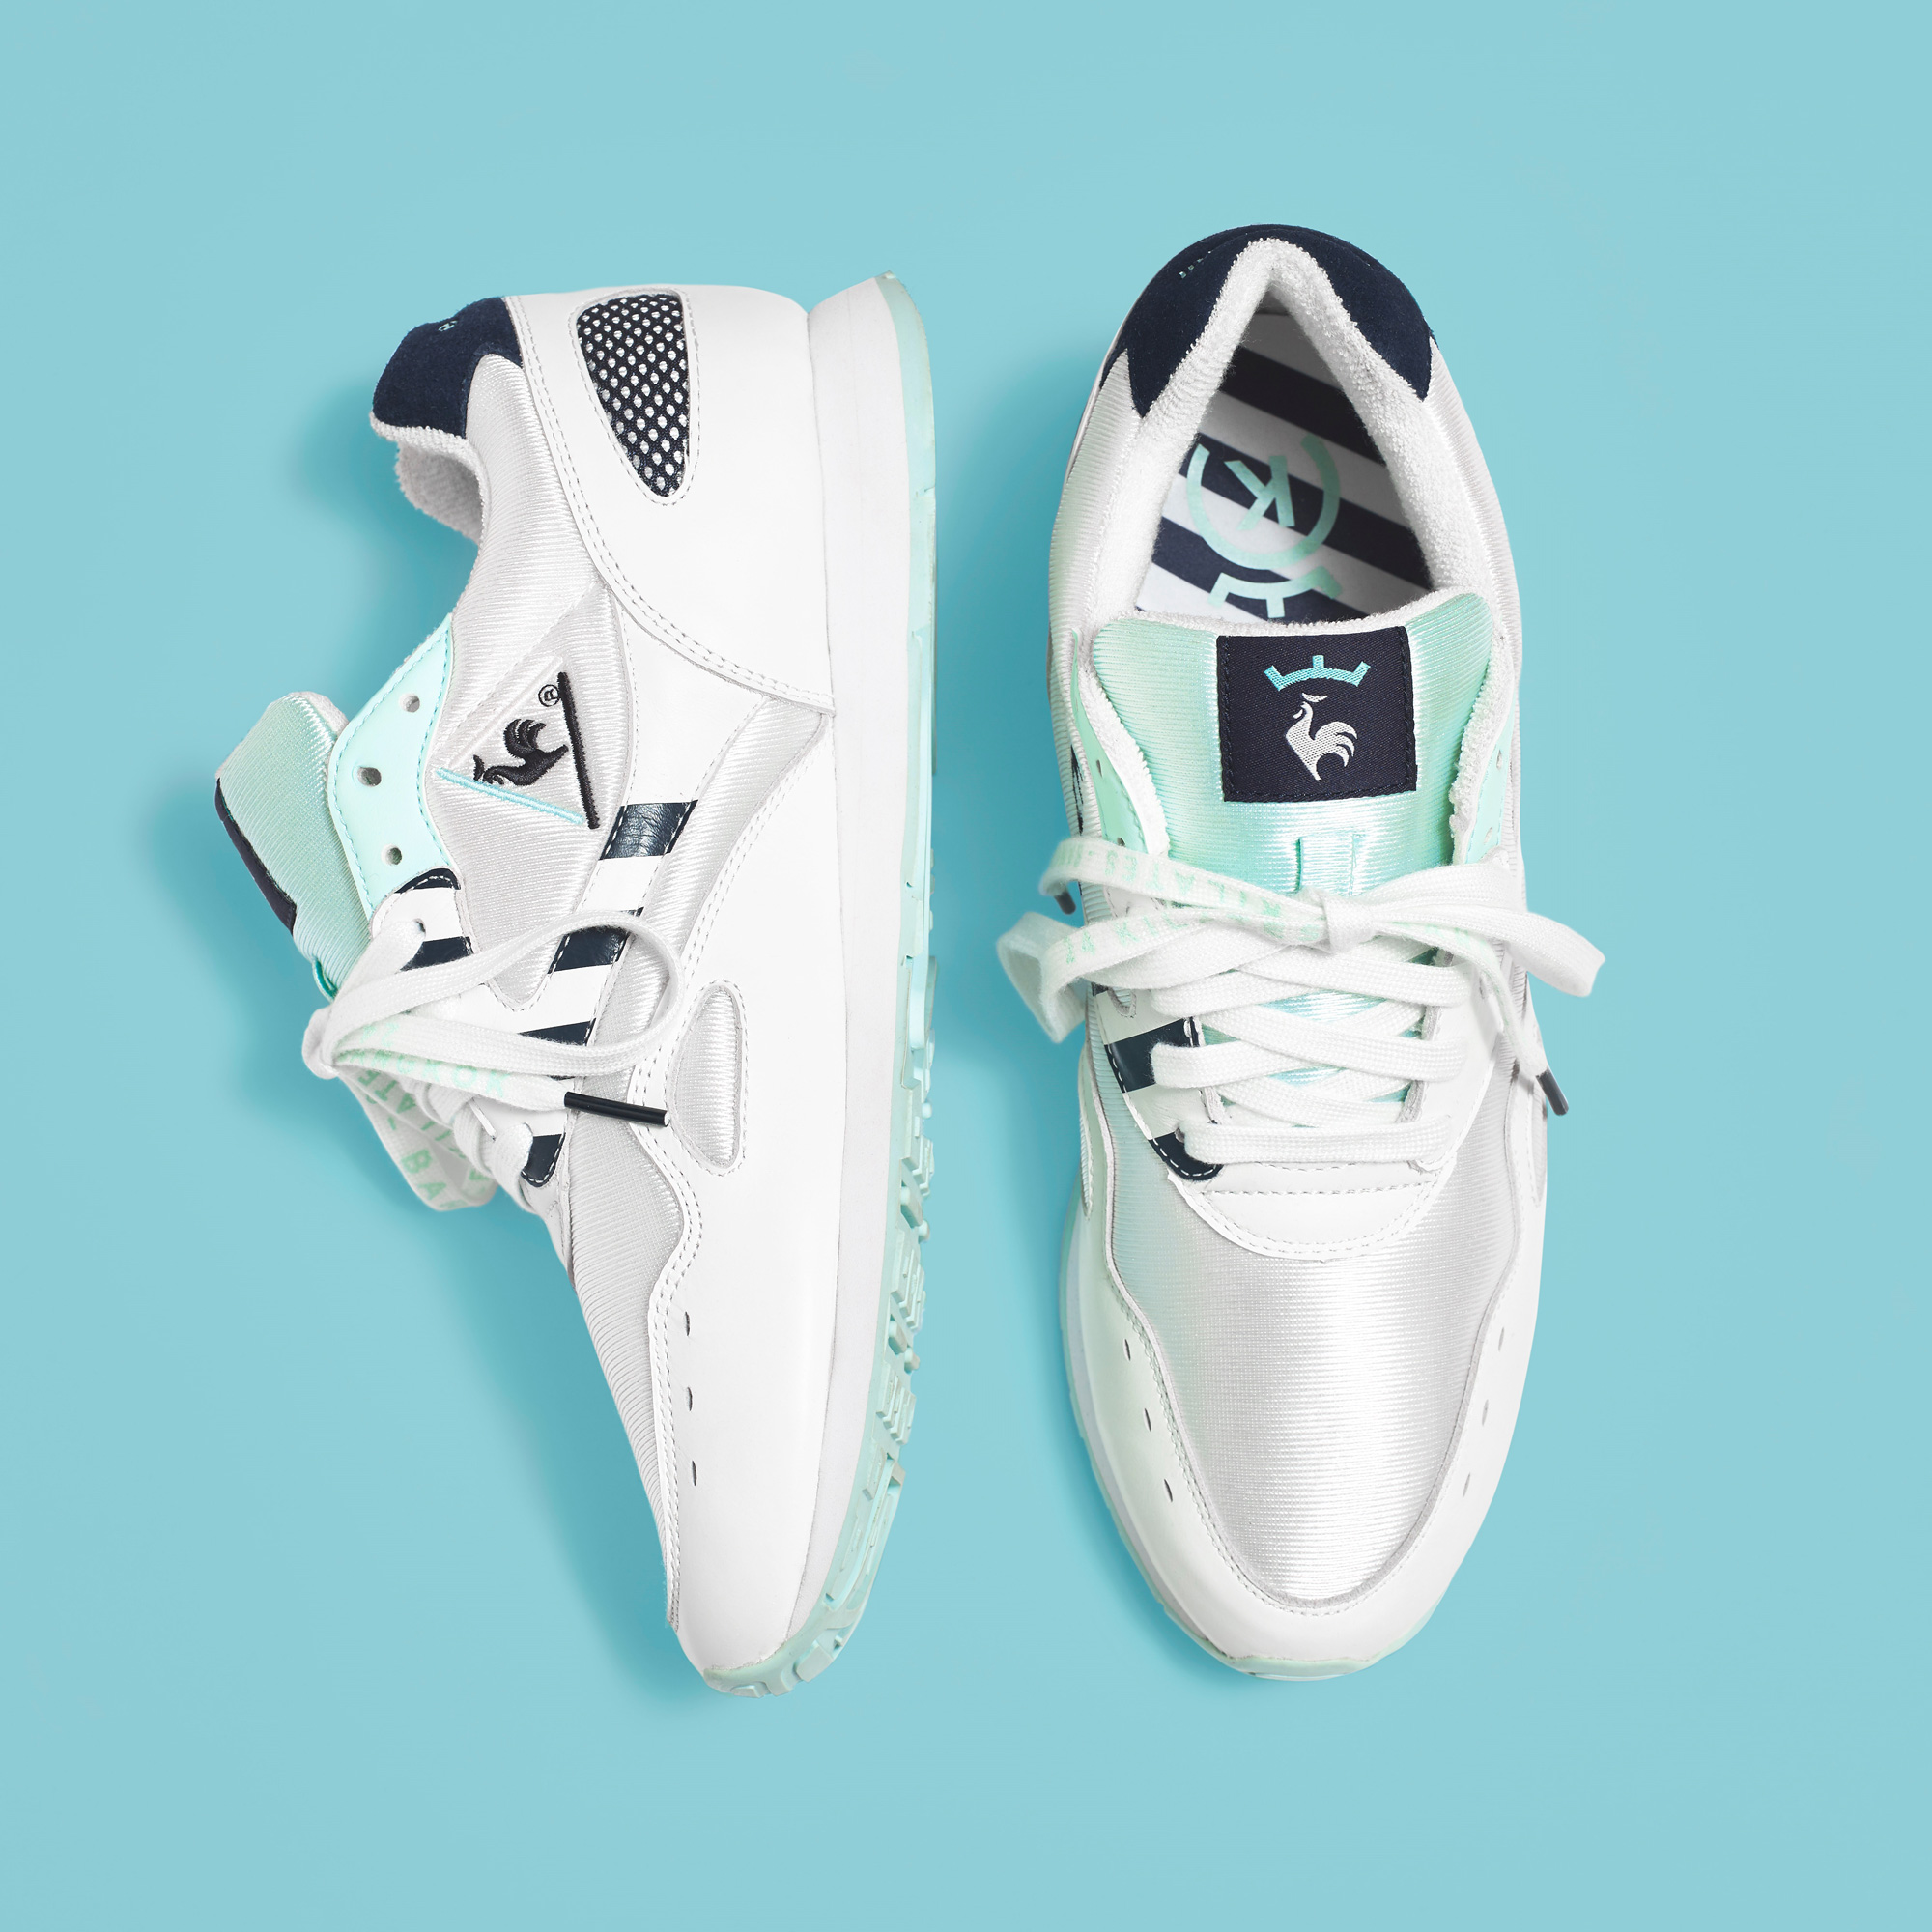 24 Kilates Le Coq Sportif Flash II - 1810726_10